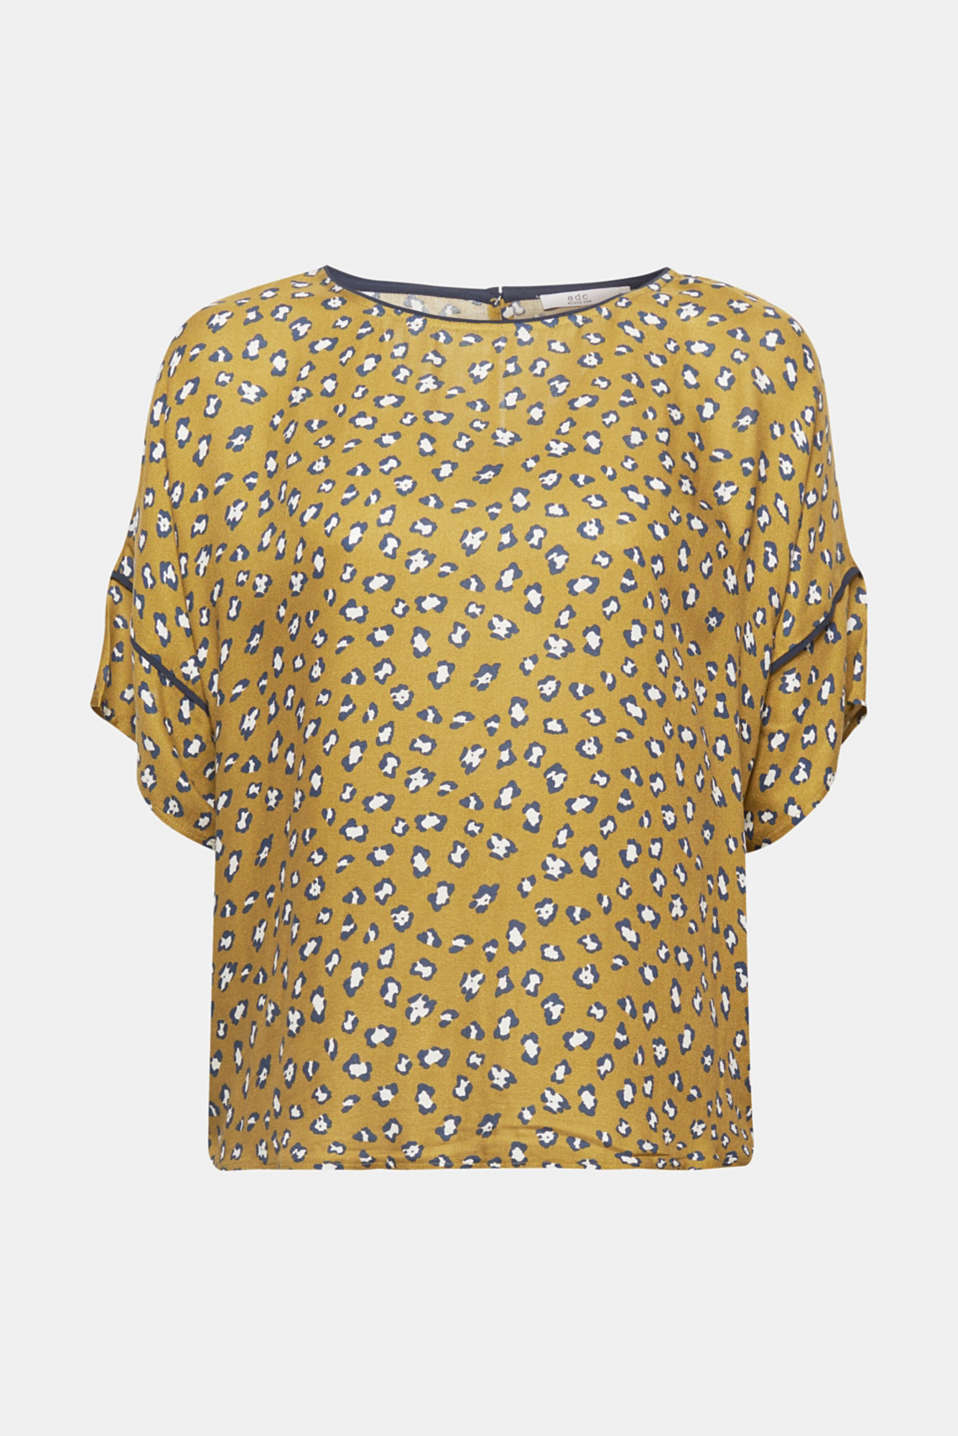 Abstract flowers or stylised animal print? Either way, the design of this flowing blouse is captivating!